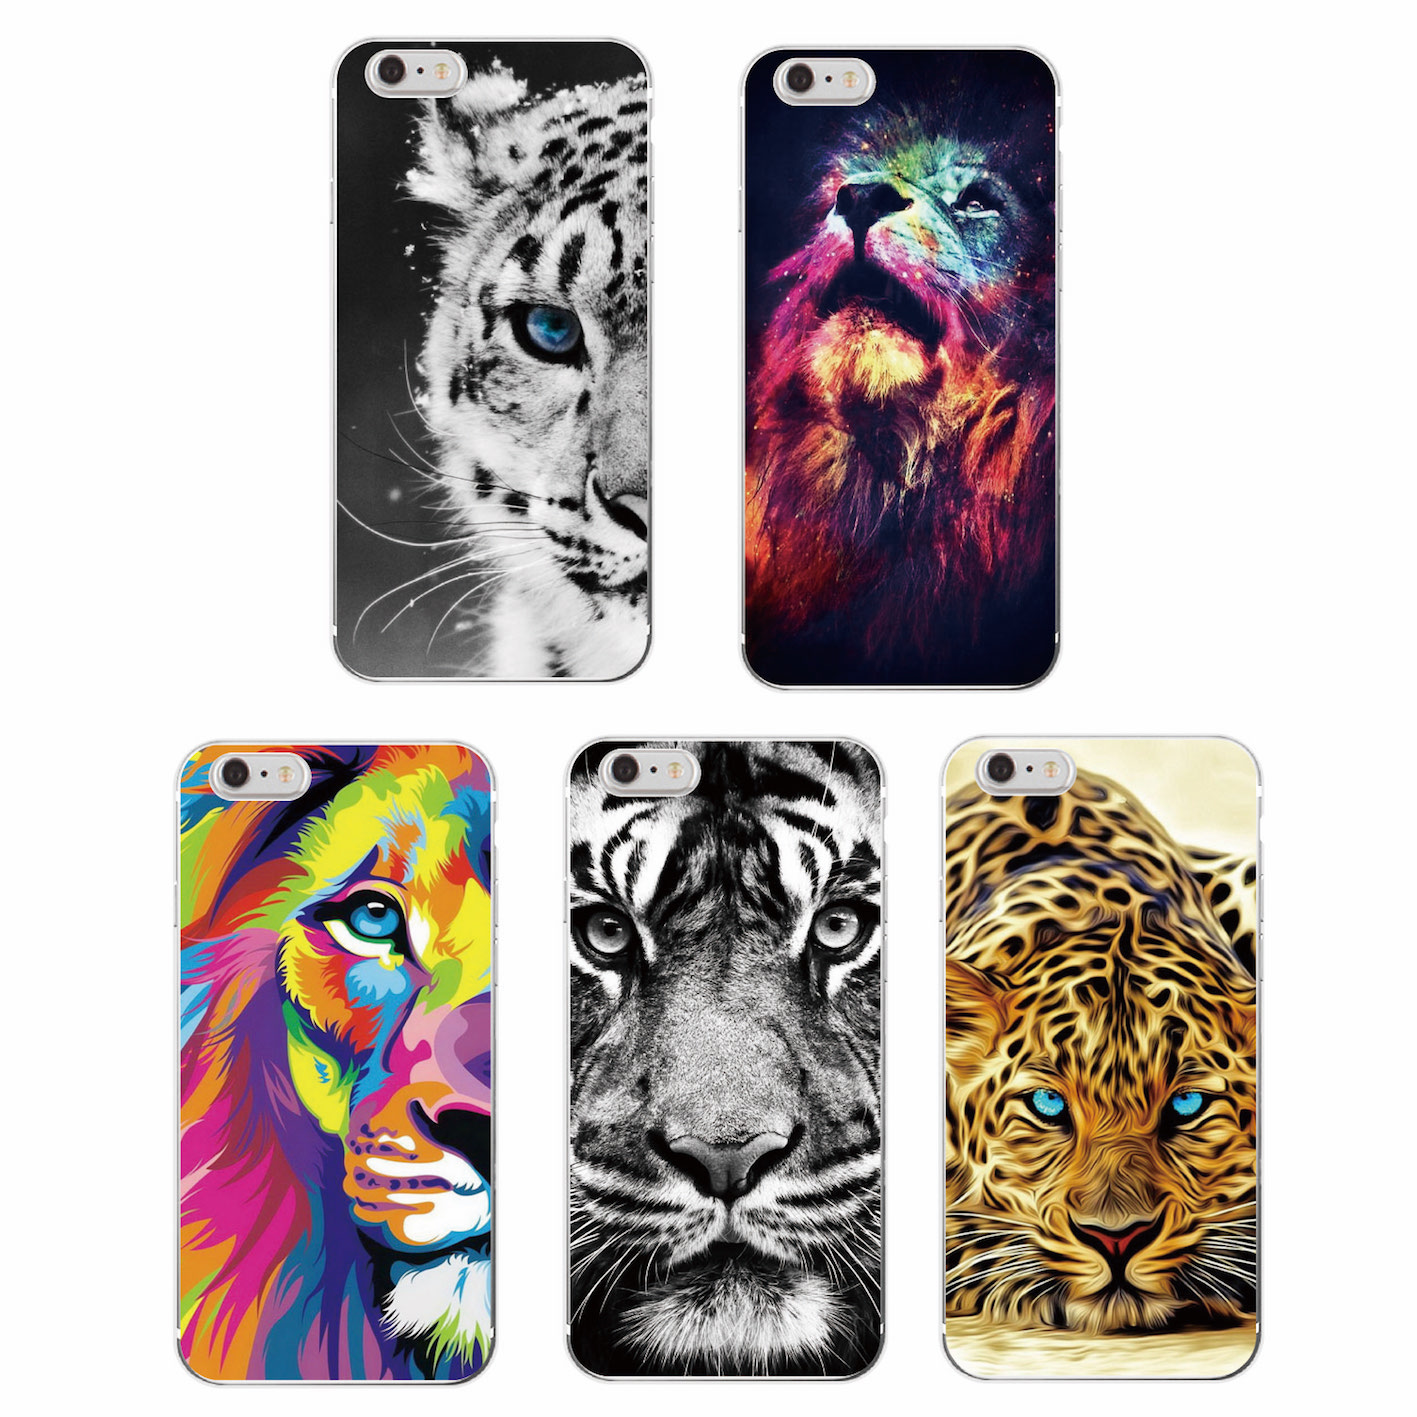 Fashion lion tiger panther leopard soft tpu case coque for Coque iphone 7 portefeuille